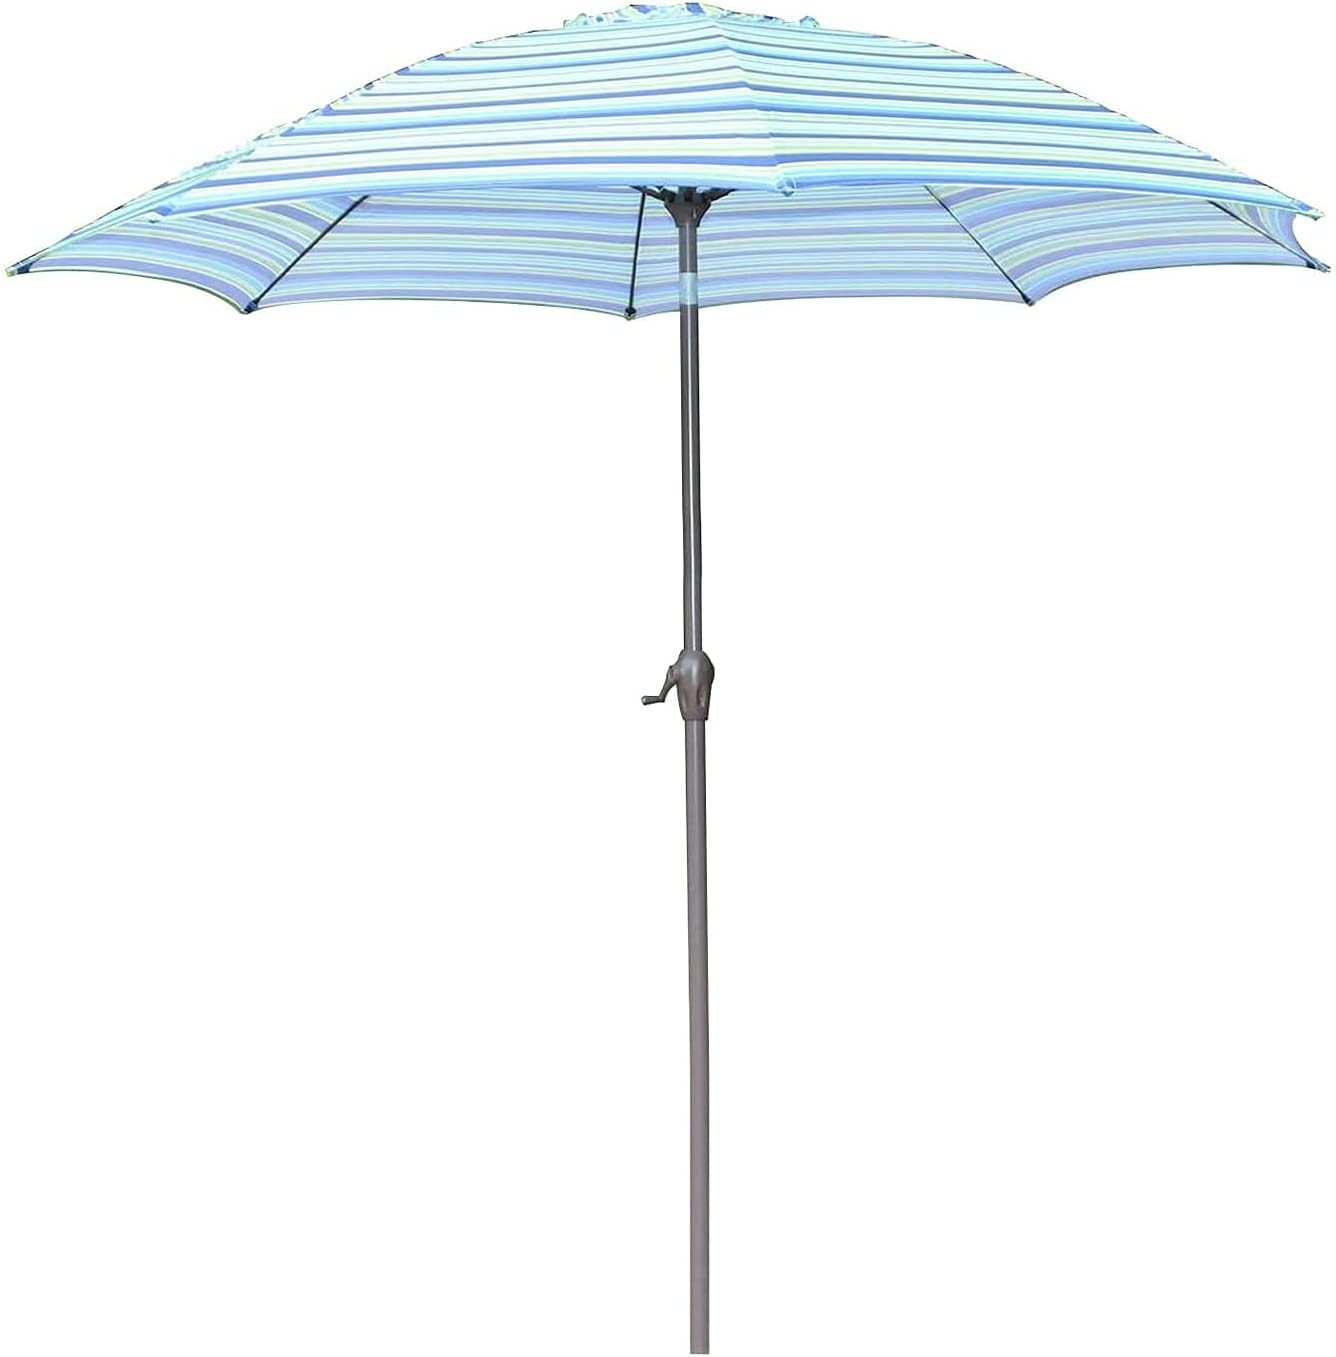 FENGNV Large Some reservation Parasol Colorado Springs Mall Umbrella Umbre Beach Striped Patio